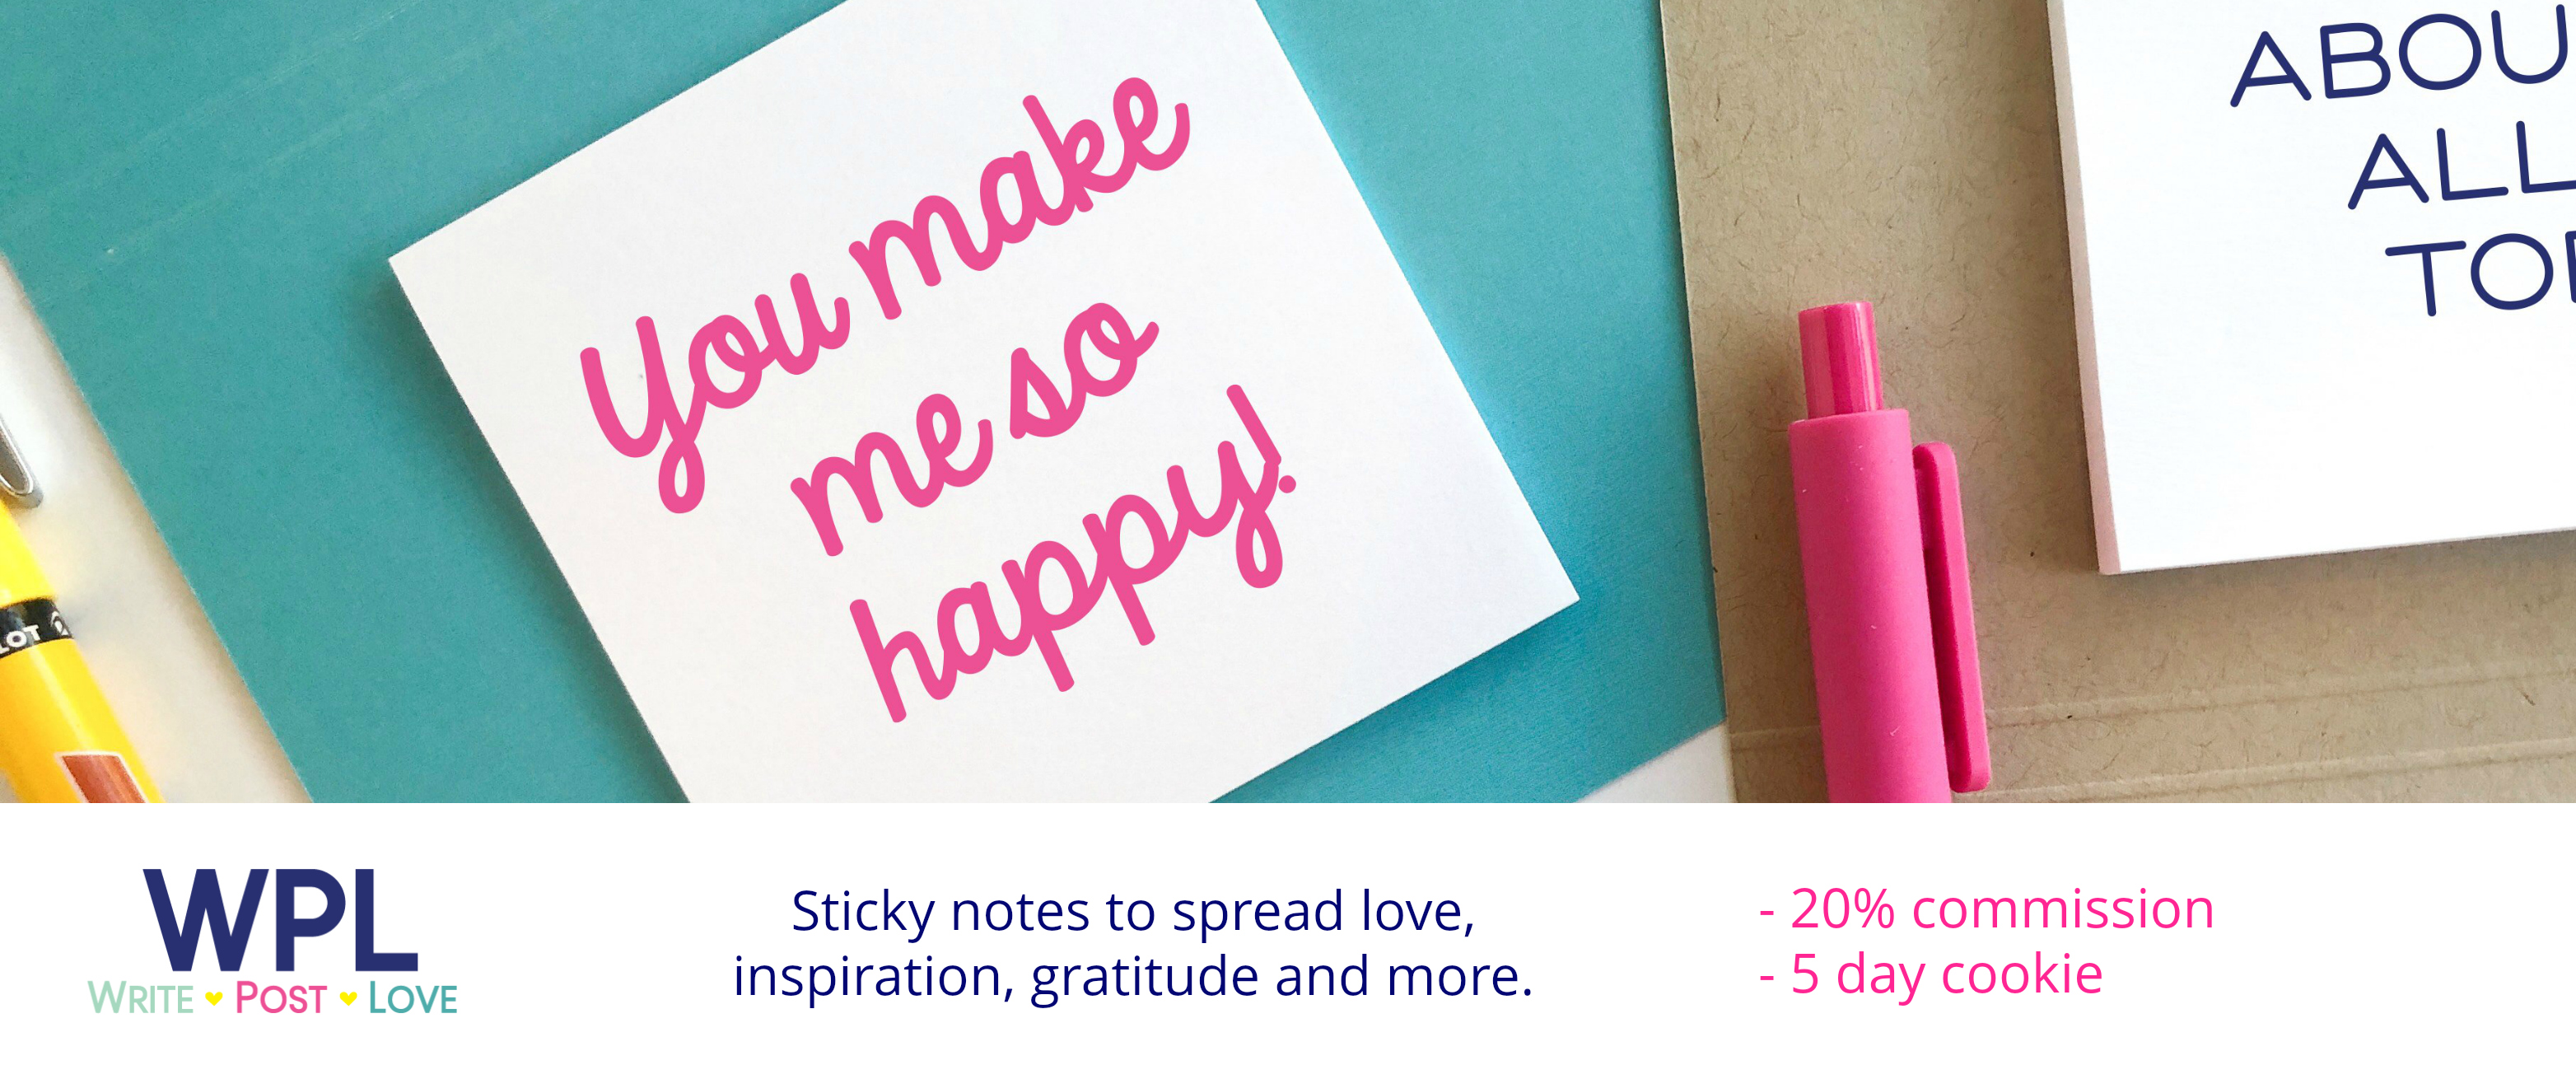 Write Post Love - Inspirational Sticky Notes